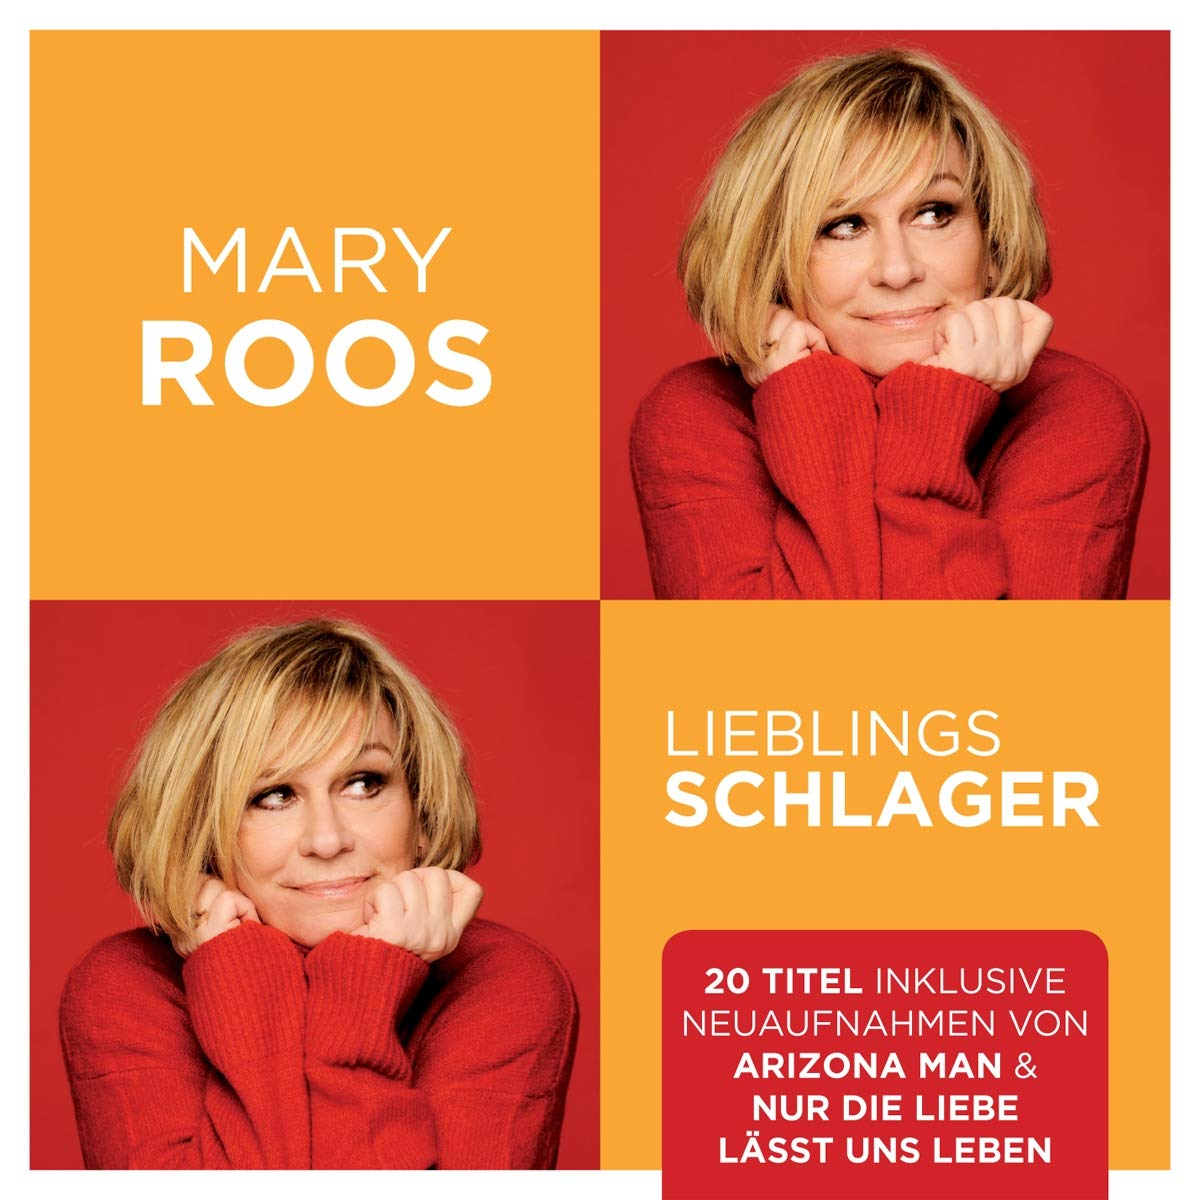 MARY ROOS – LIEBLINGSSCHLAGER